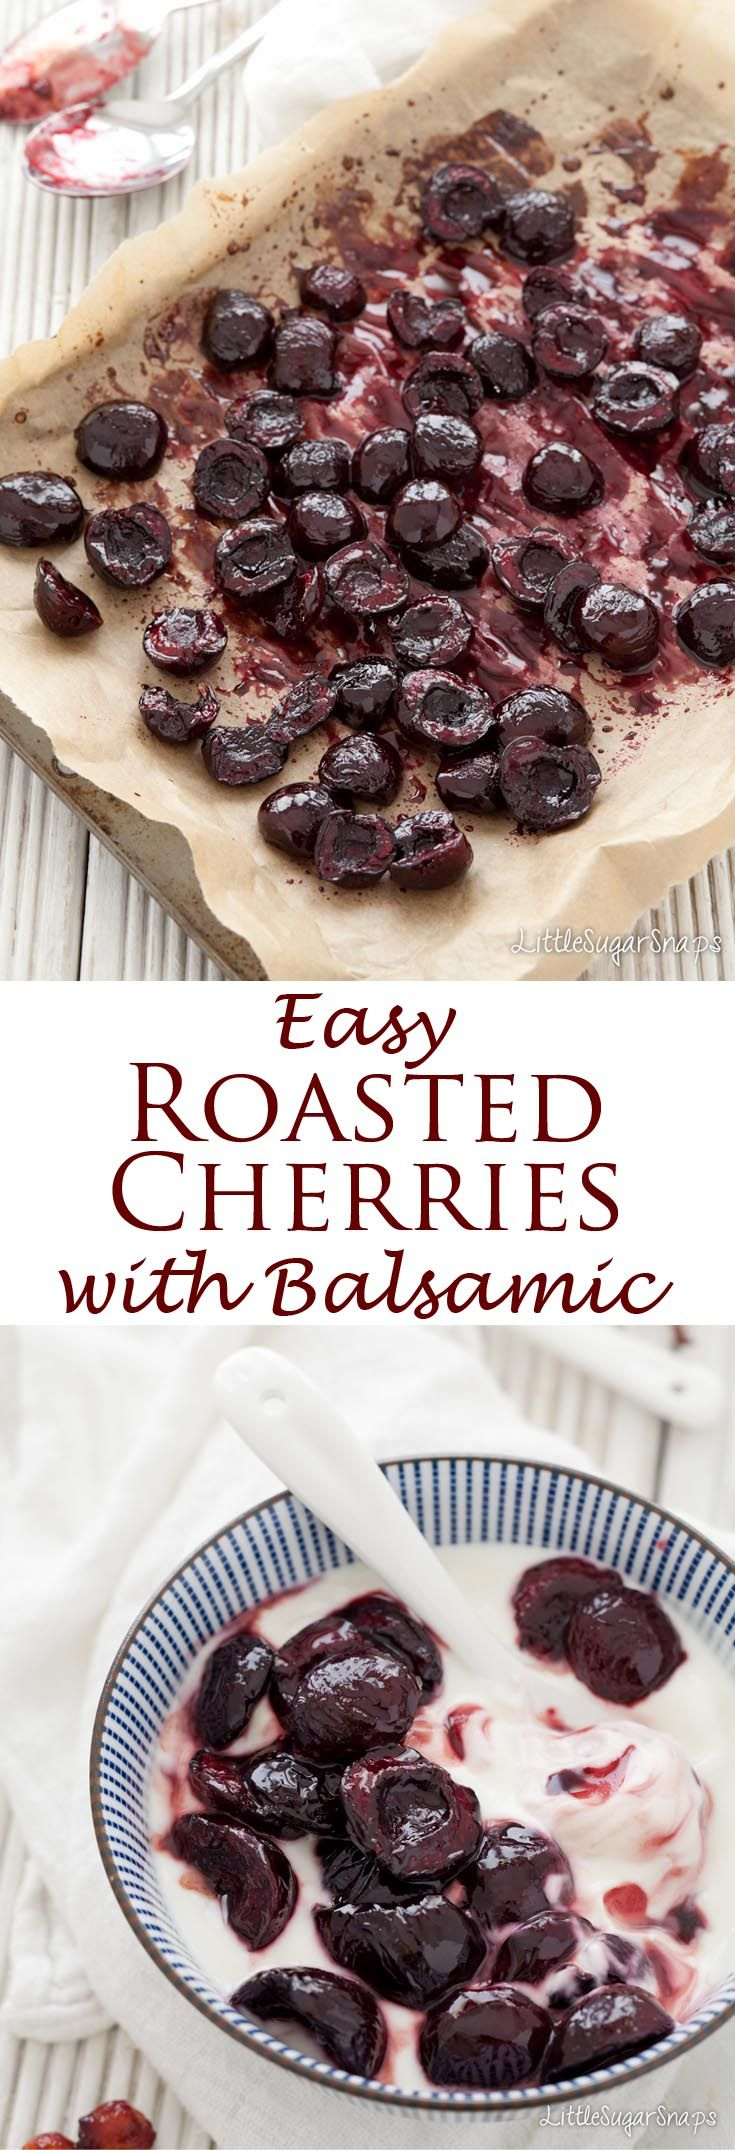 Roasted Cherries with a hint of Balsamic Vinegar are so easy to make and require just 3 ingredients. The result is impressive: intense, juicy cherries glazed in a thick syrup. They are unexpectedly good.